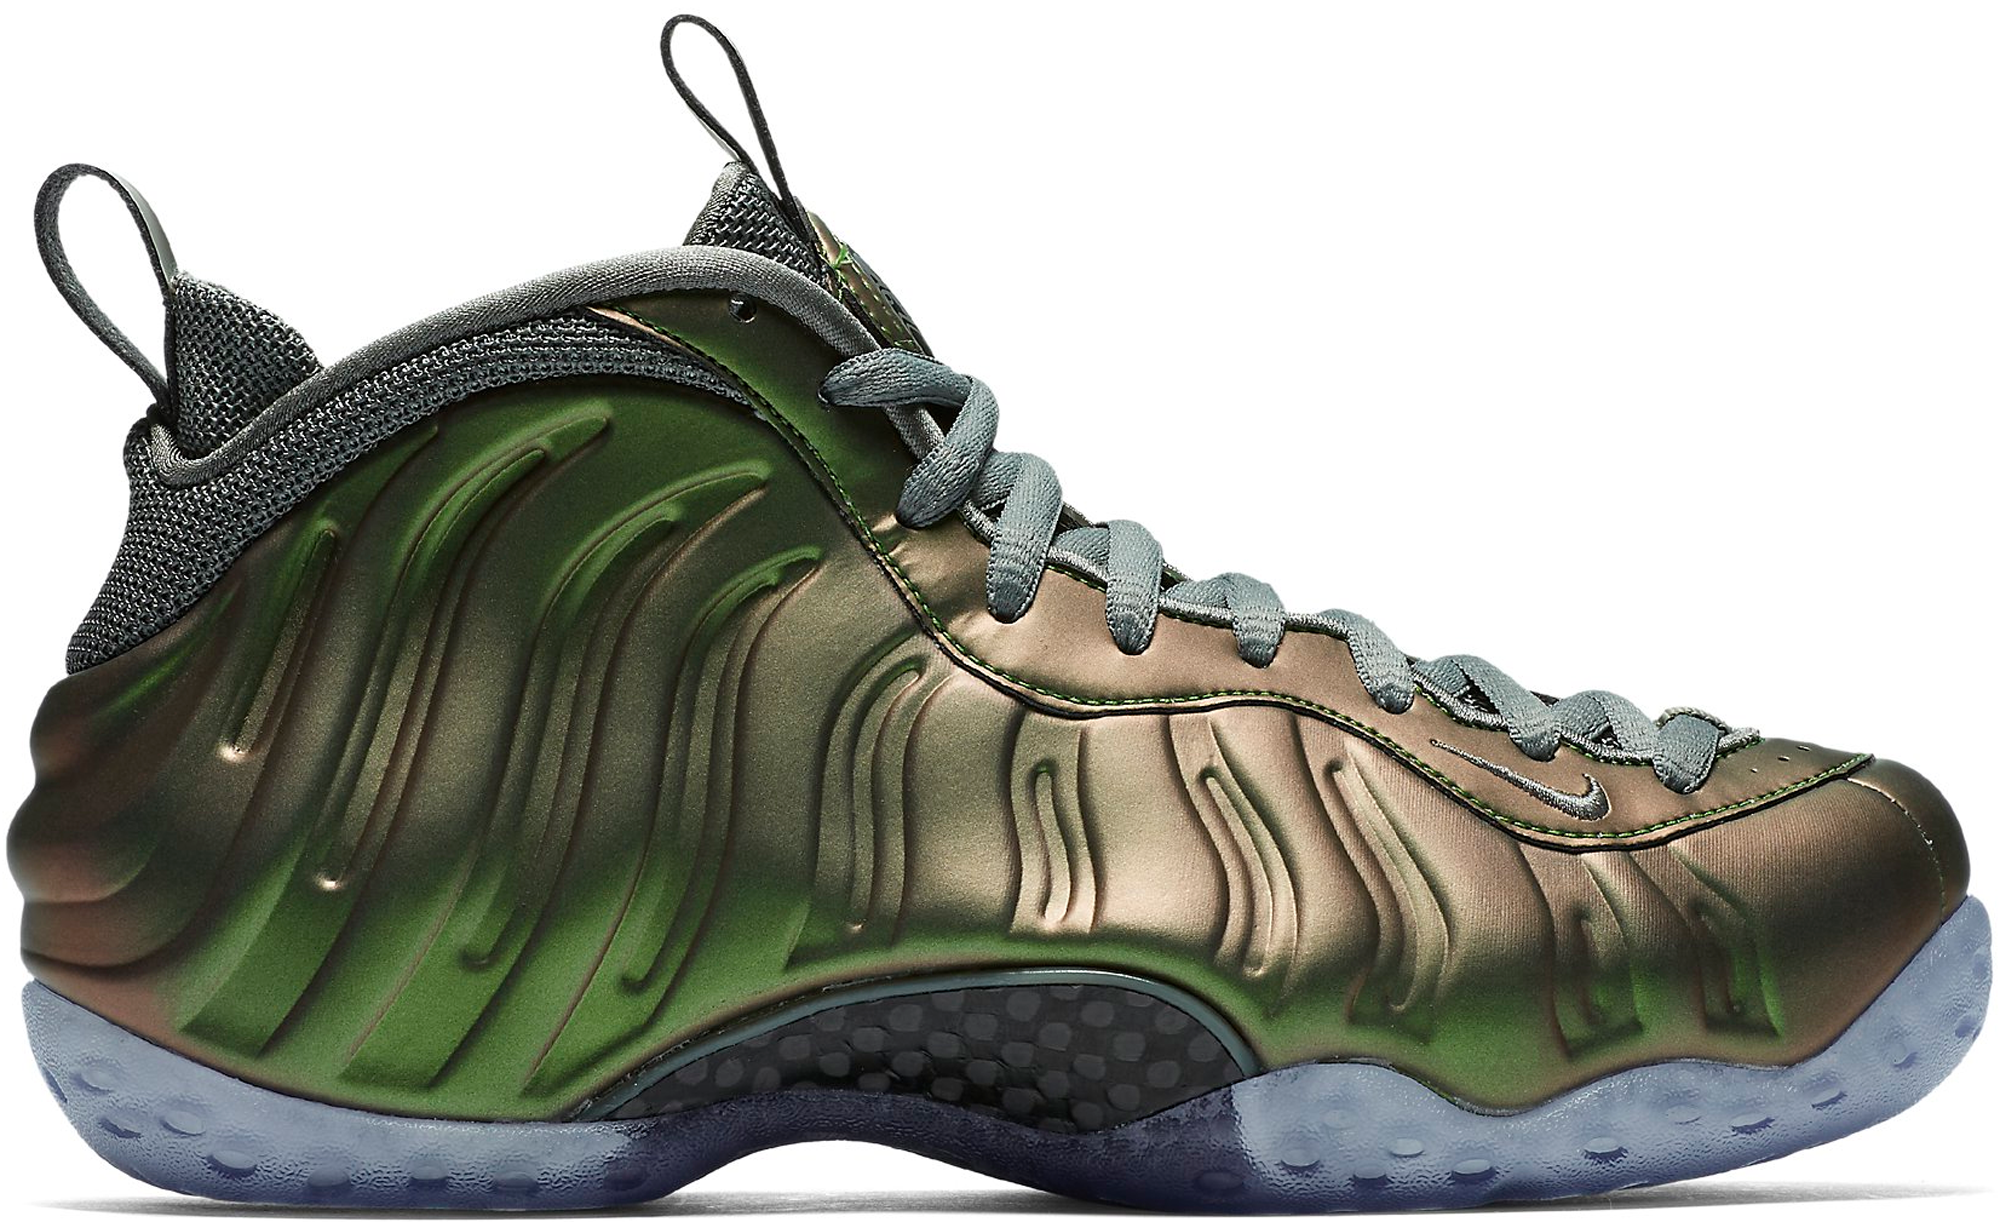 Nike Air Foamposite One Cracked LavaBump